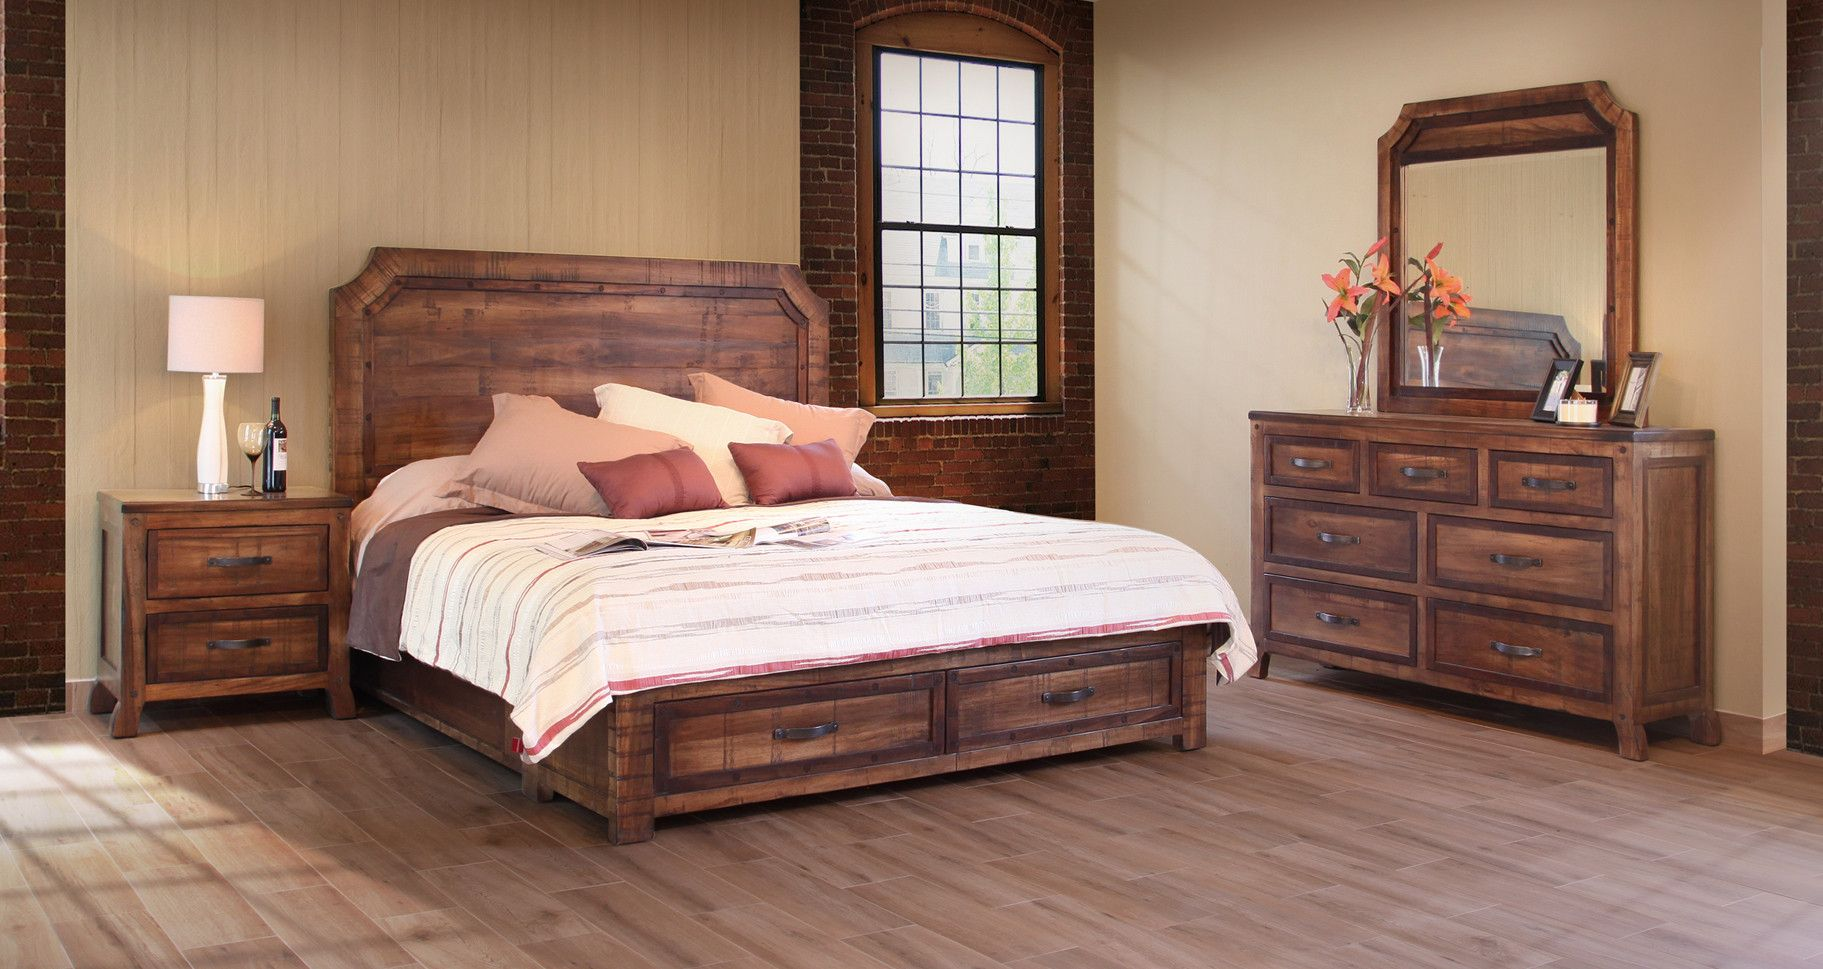 This Regal Solid Wood Rustic Bedroom Suite Cal King Size Is 100